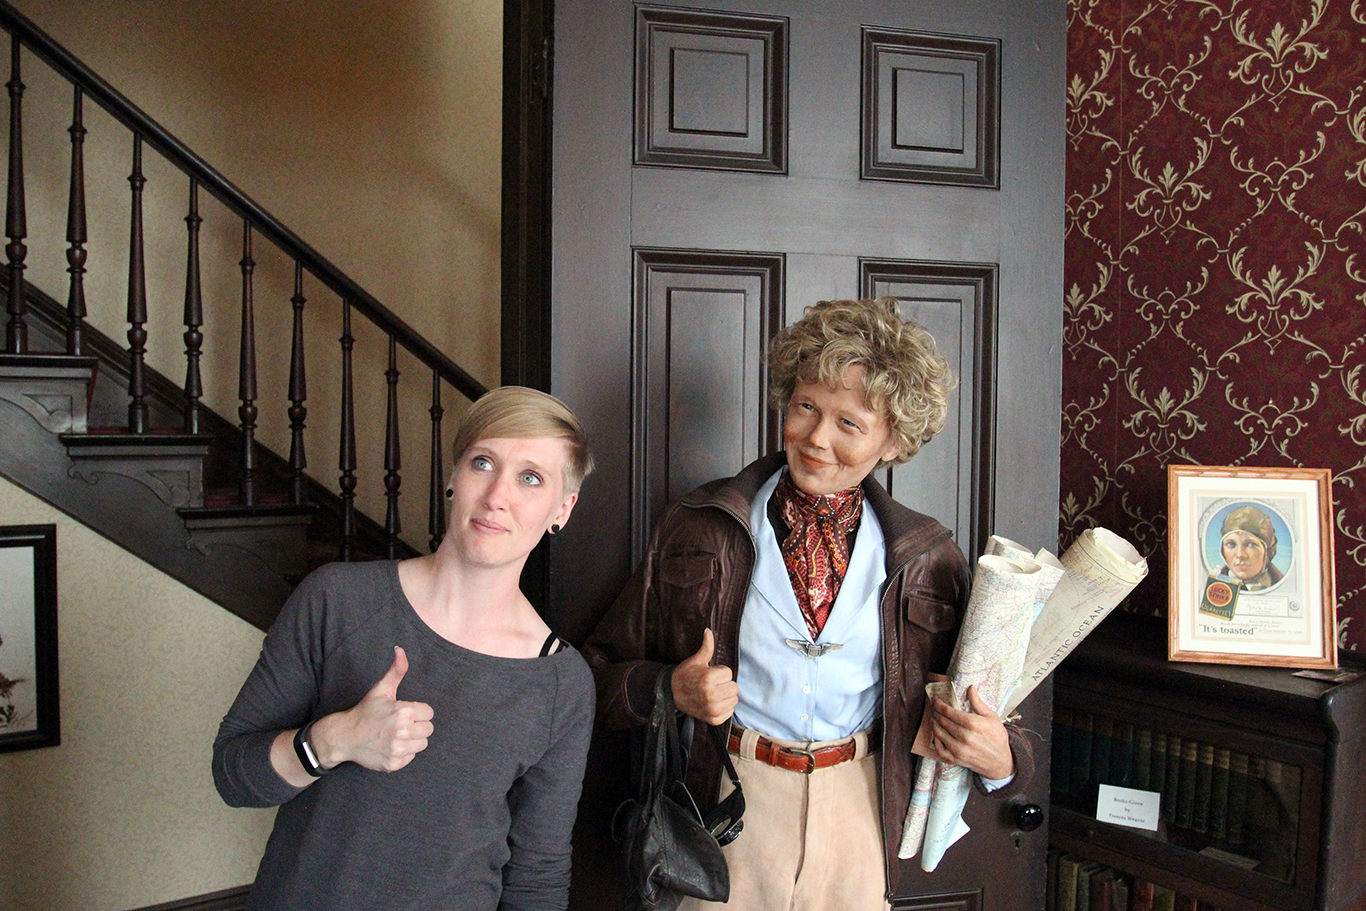 Me with an Amelia Earhart Wax Statue in Atchison, KS